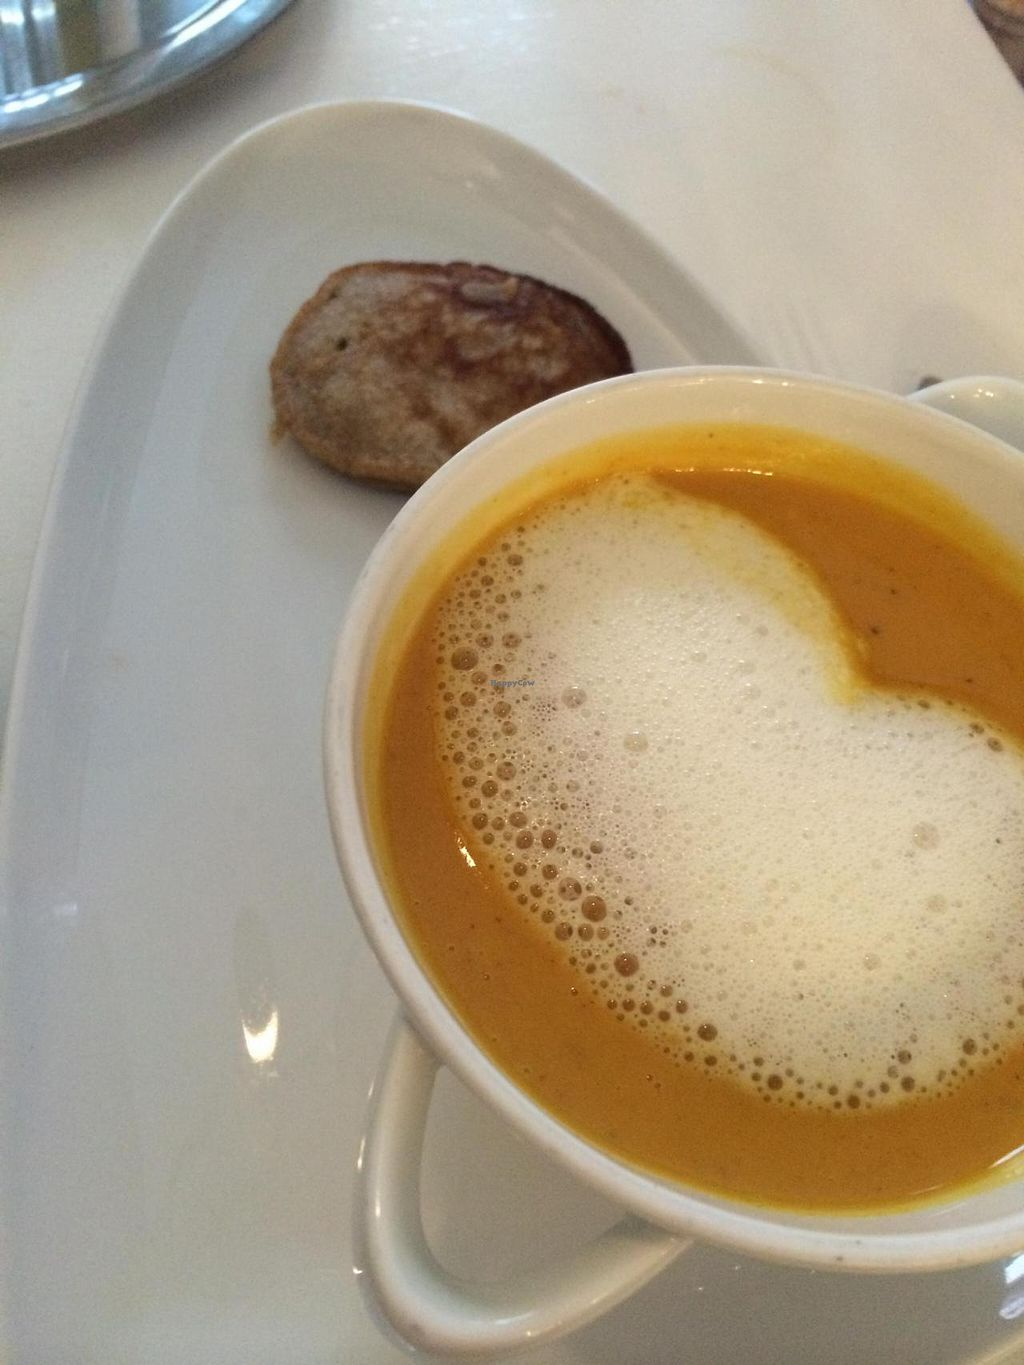 """Photo of The Green Garden  by <a href=""""/members/profile/JazzyCow"""">JazzyCow</a> <br/>African peanut soup with a banana pancake -- so delicious!  <br/> August 10, 2014  - <a href='/contact/abuse/image/45824/76613'>Report</a>"""